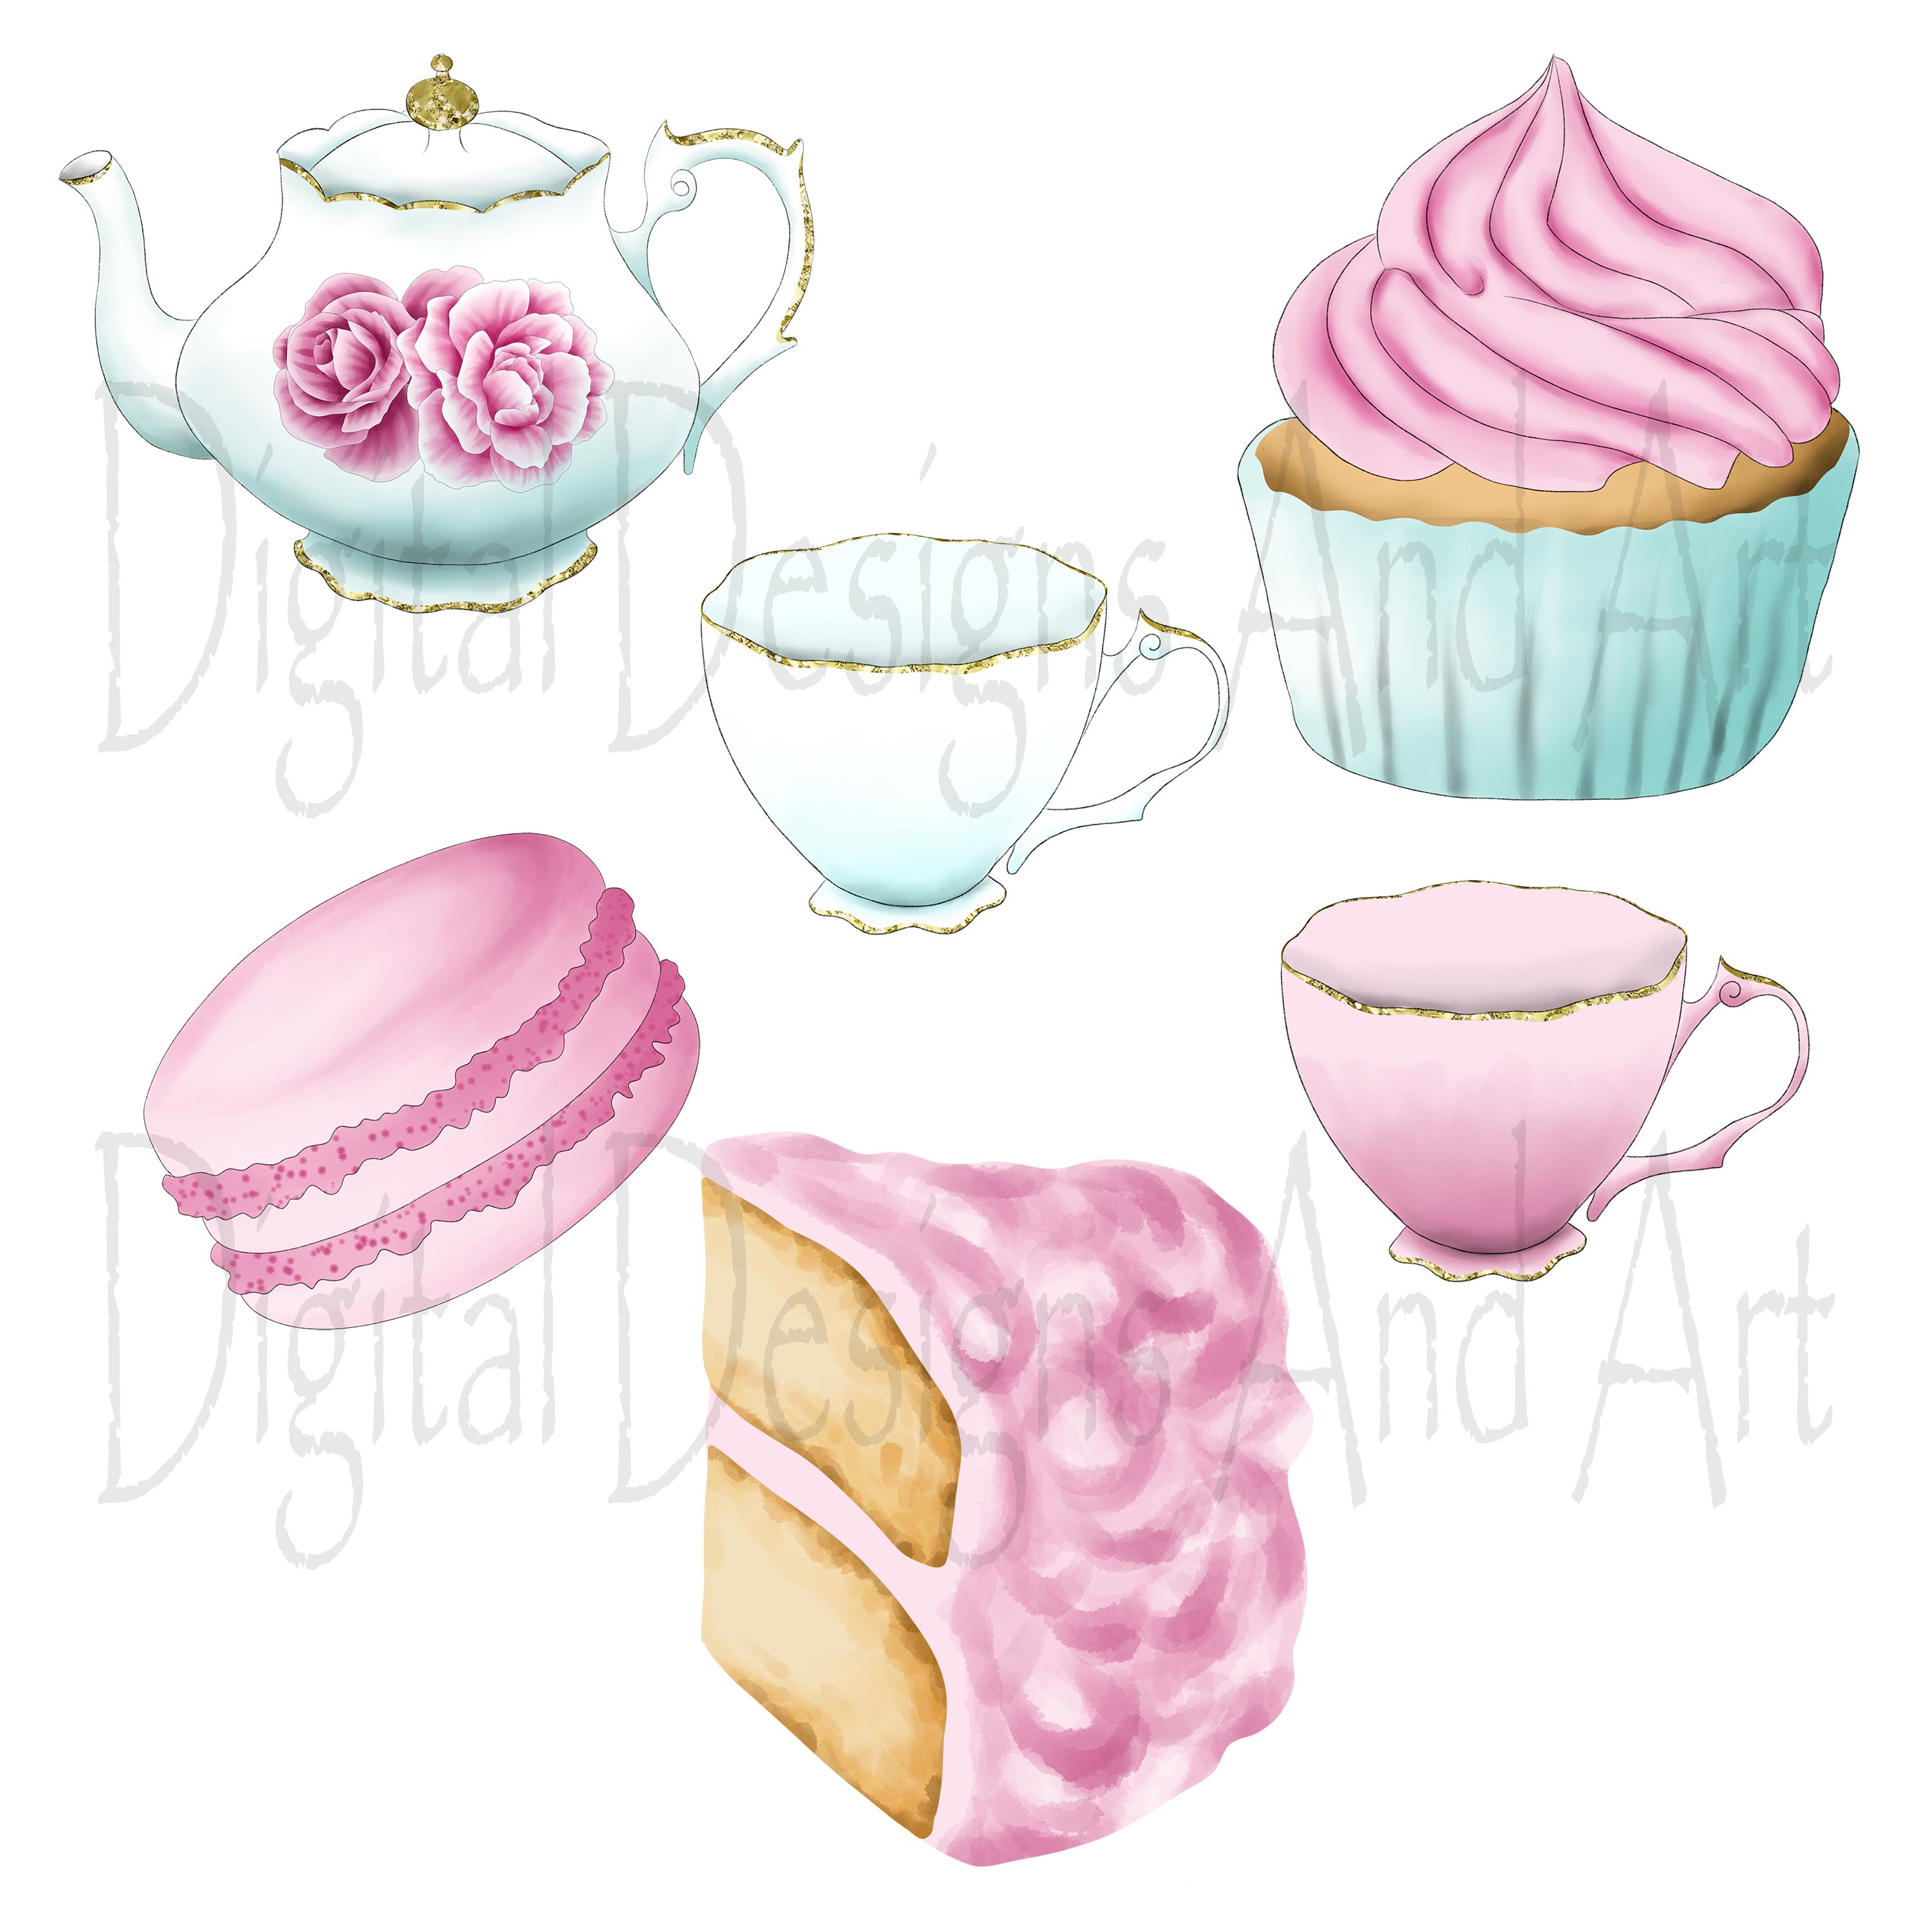 Afternoon tea clipart example image 2